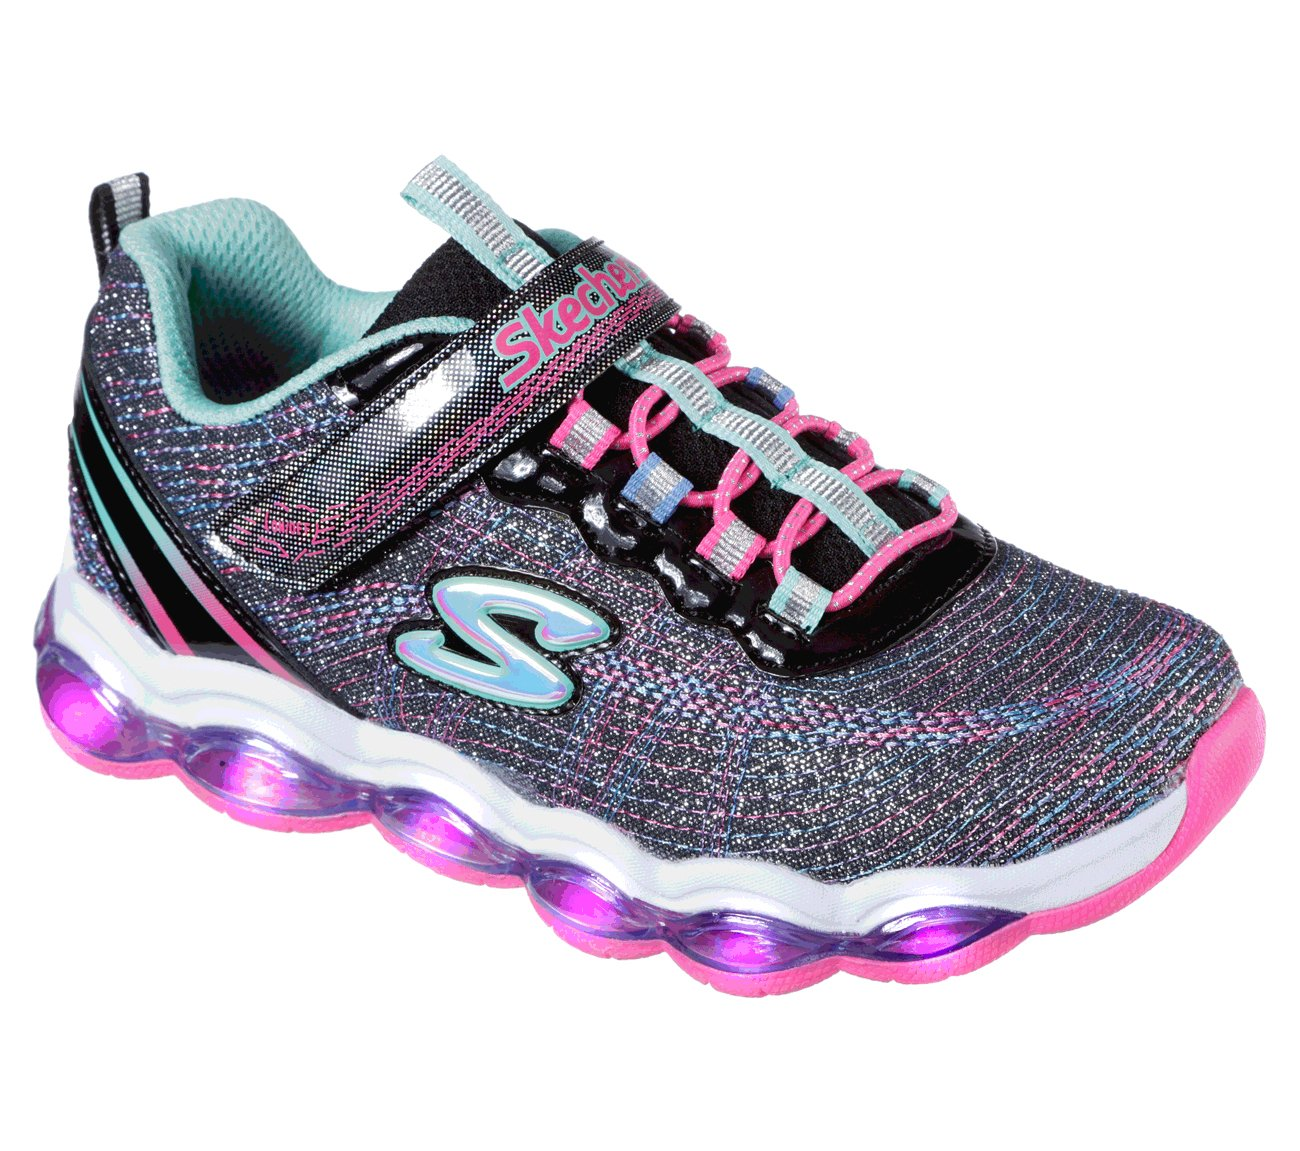 Skechers Kids Girls' Glimmer Lights Sneaker, Black/Multi, 1 M US Little Kid